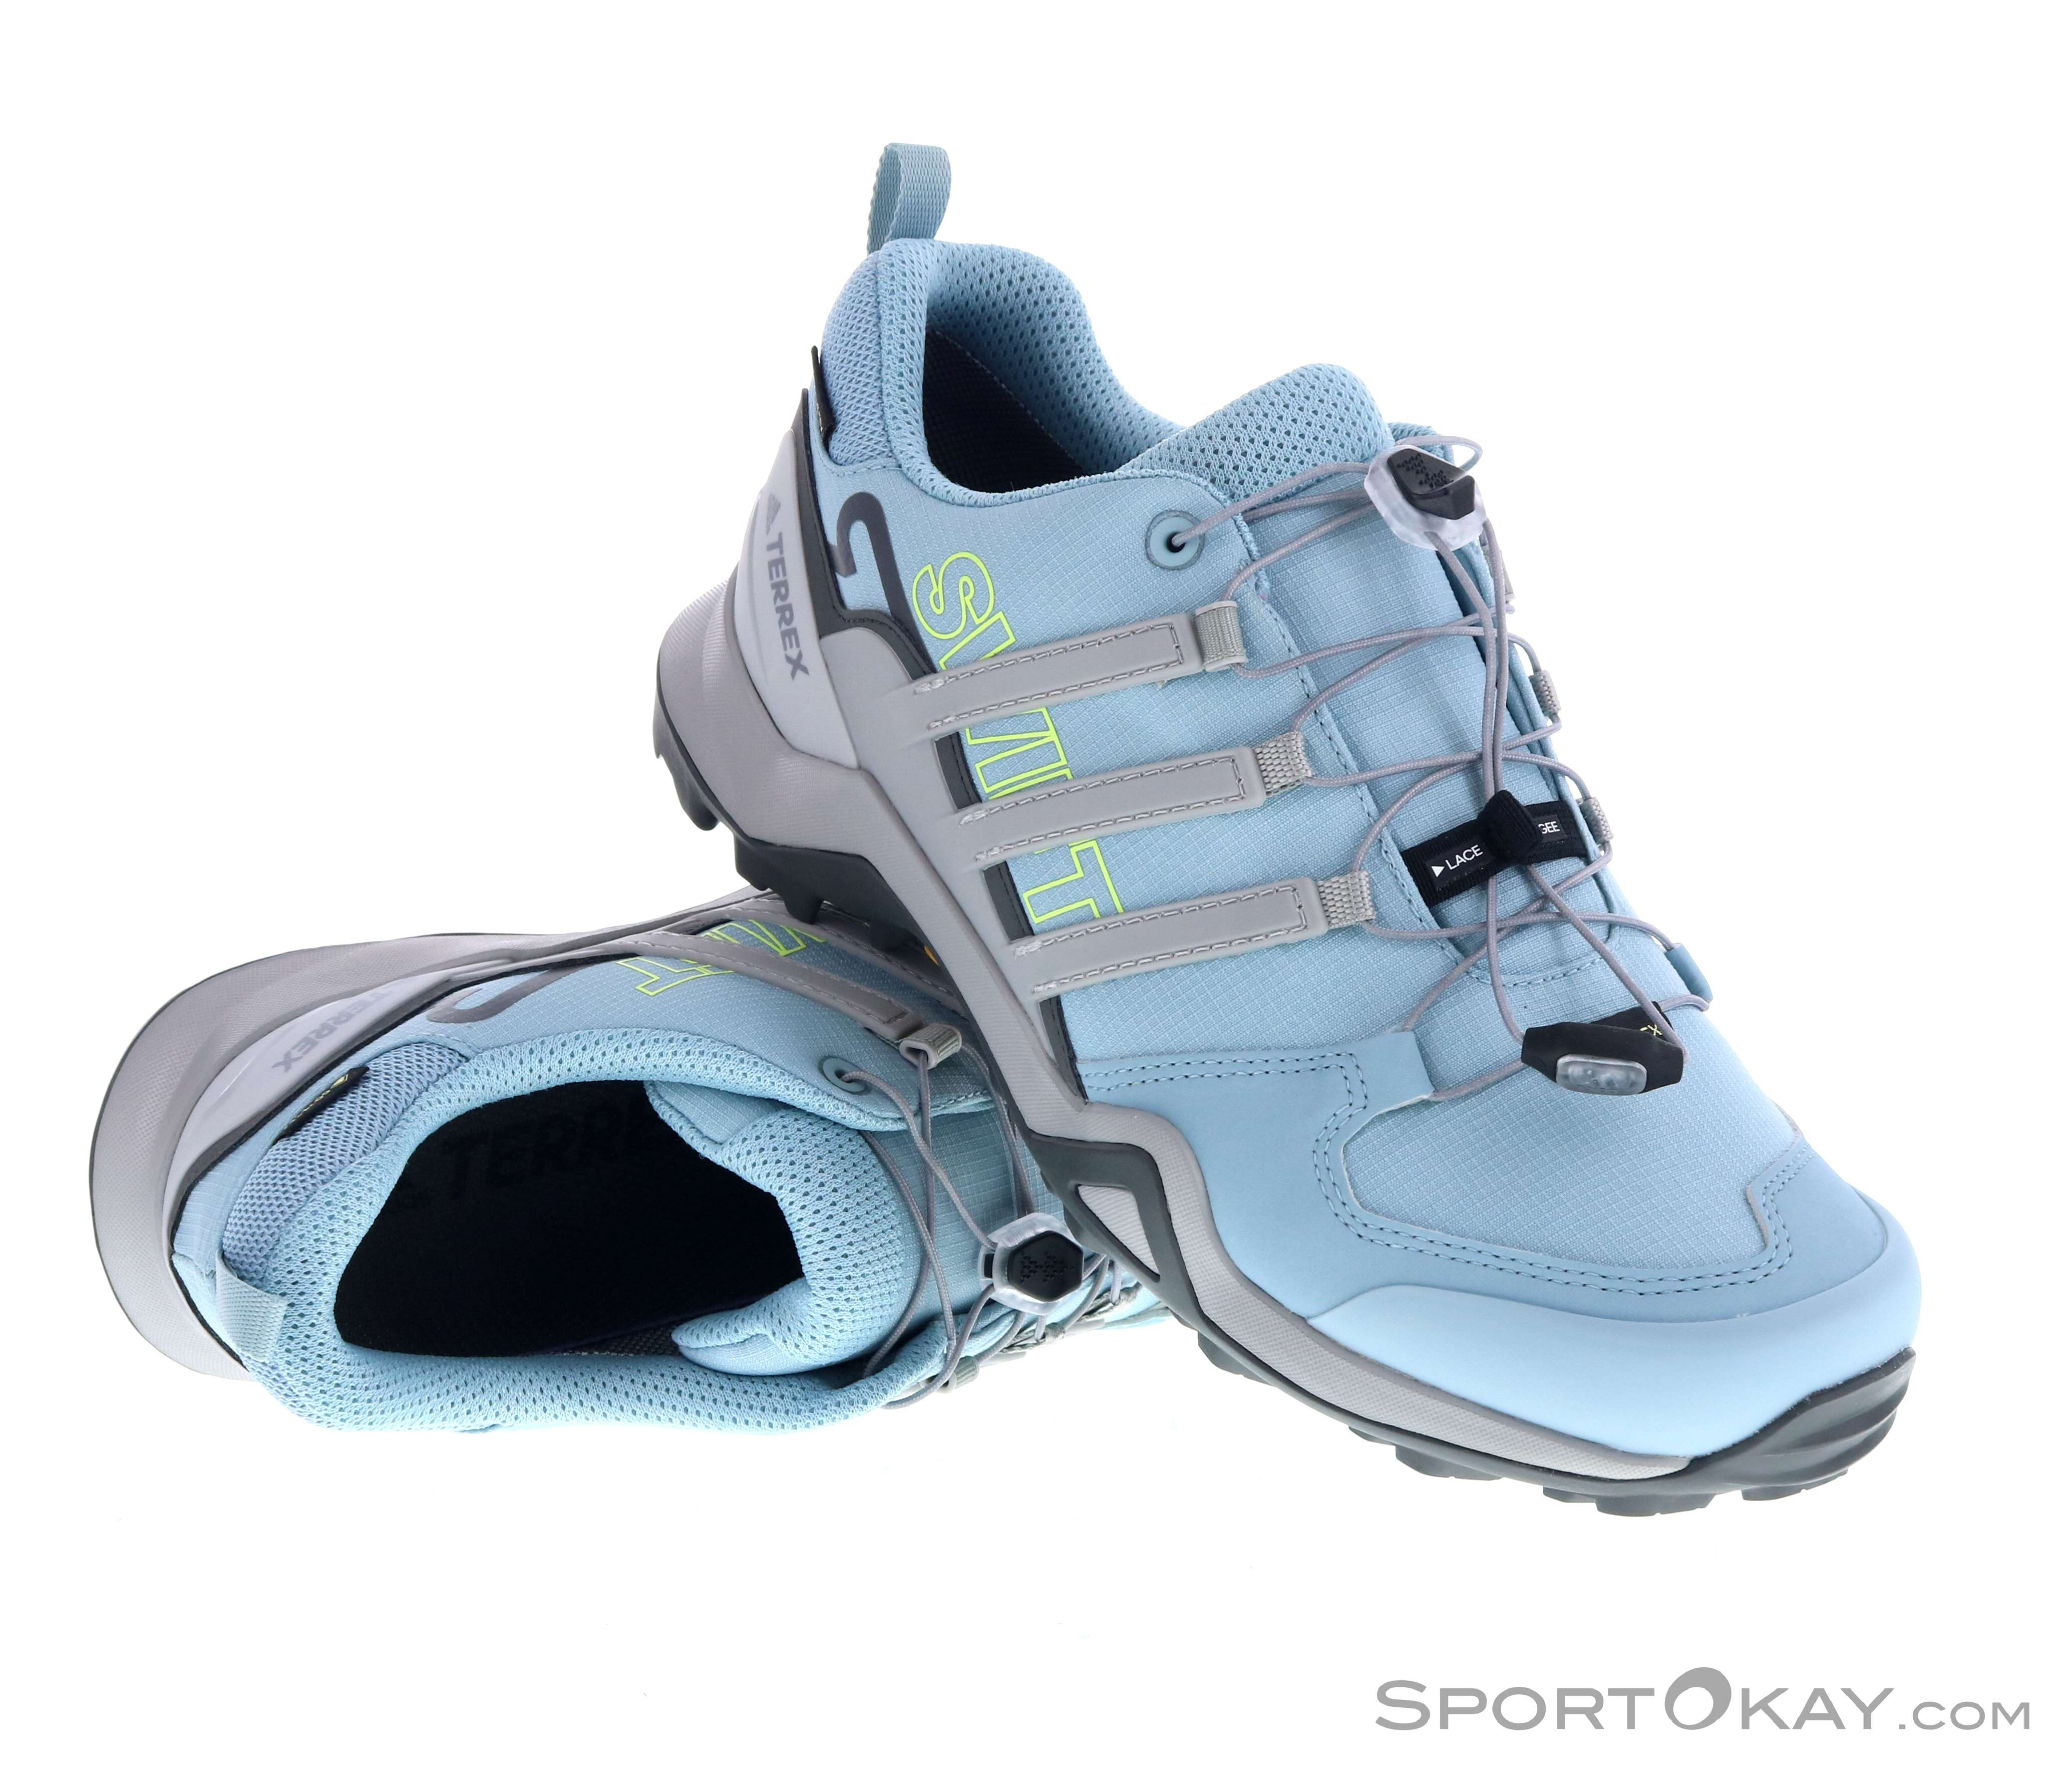 adidas Terrex adidas Terrex Swift R2 Womens Trekking Shoes Gore-Tex